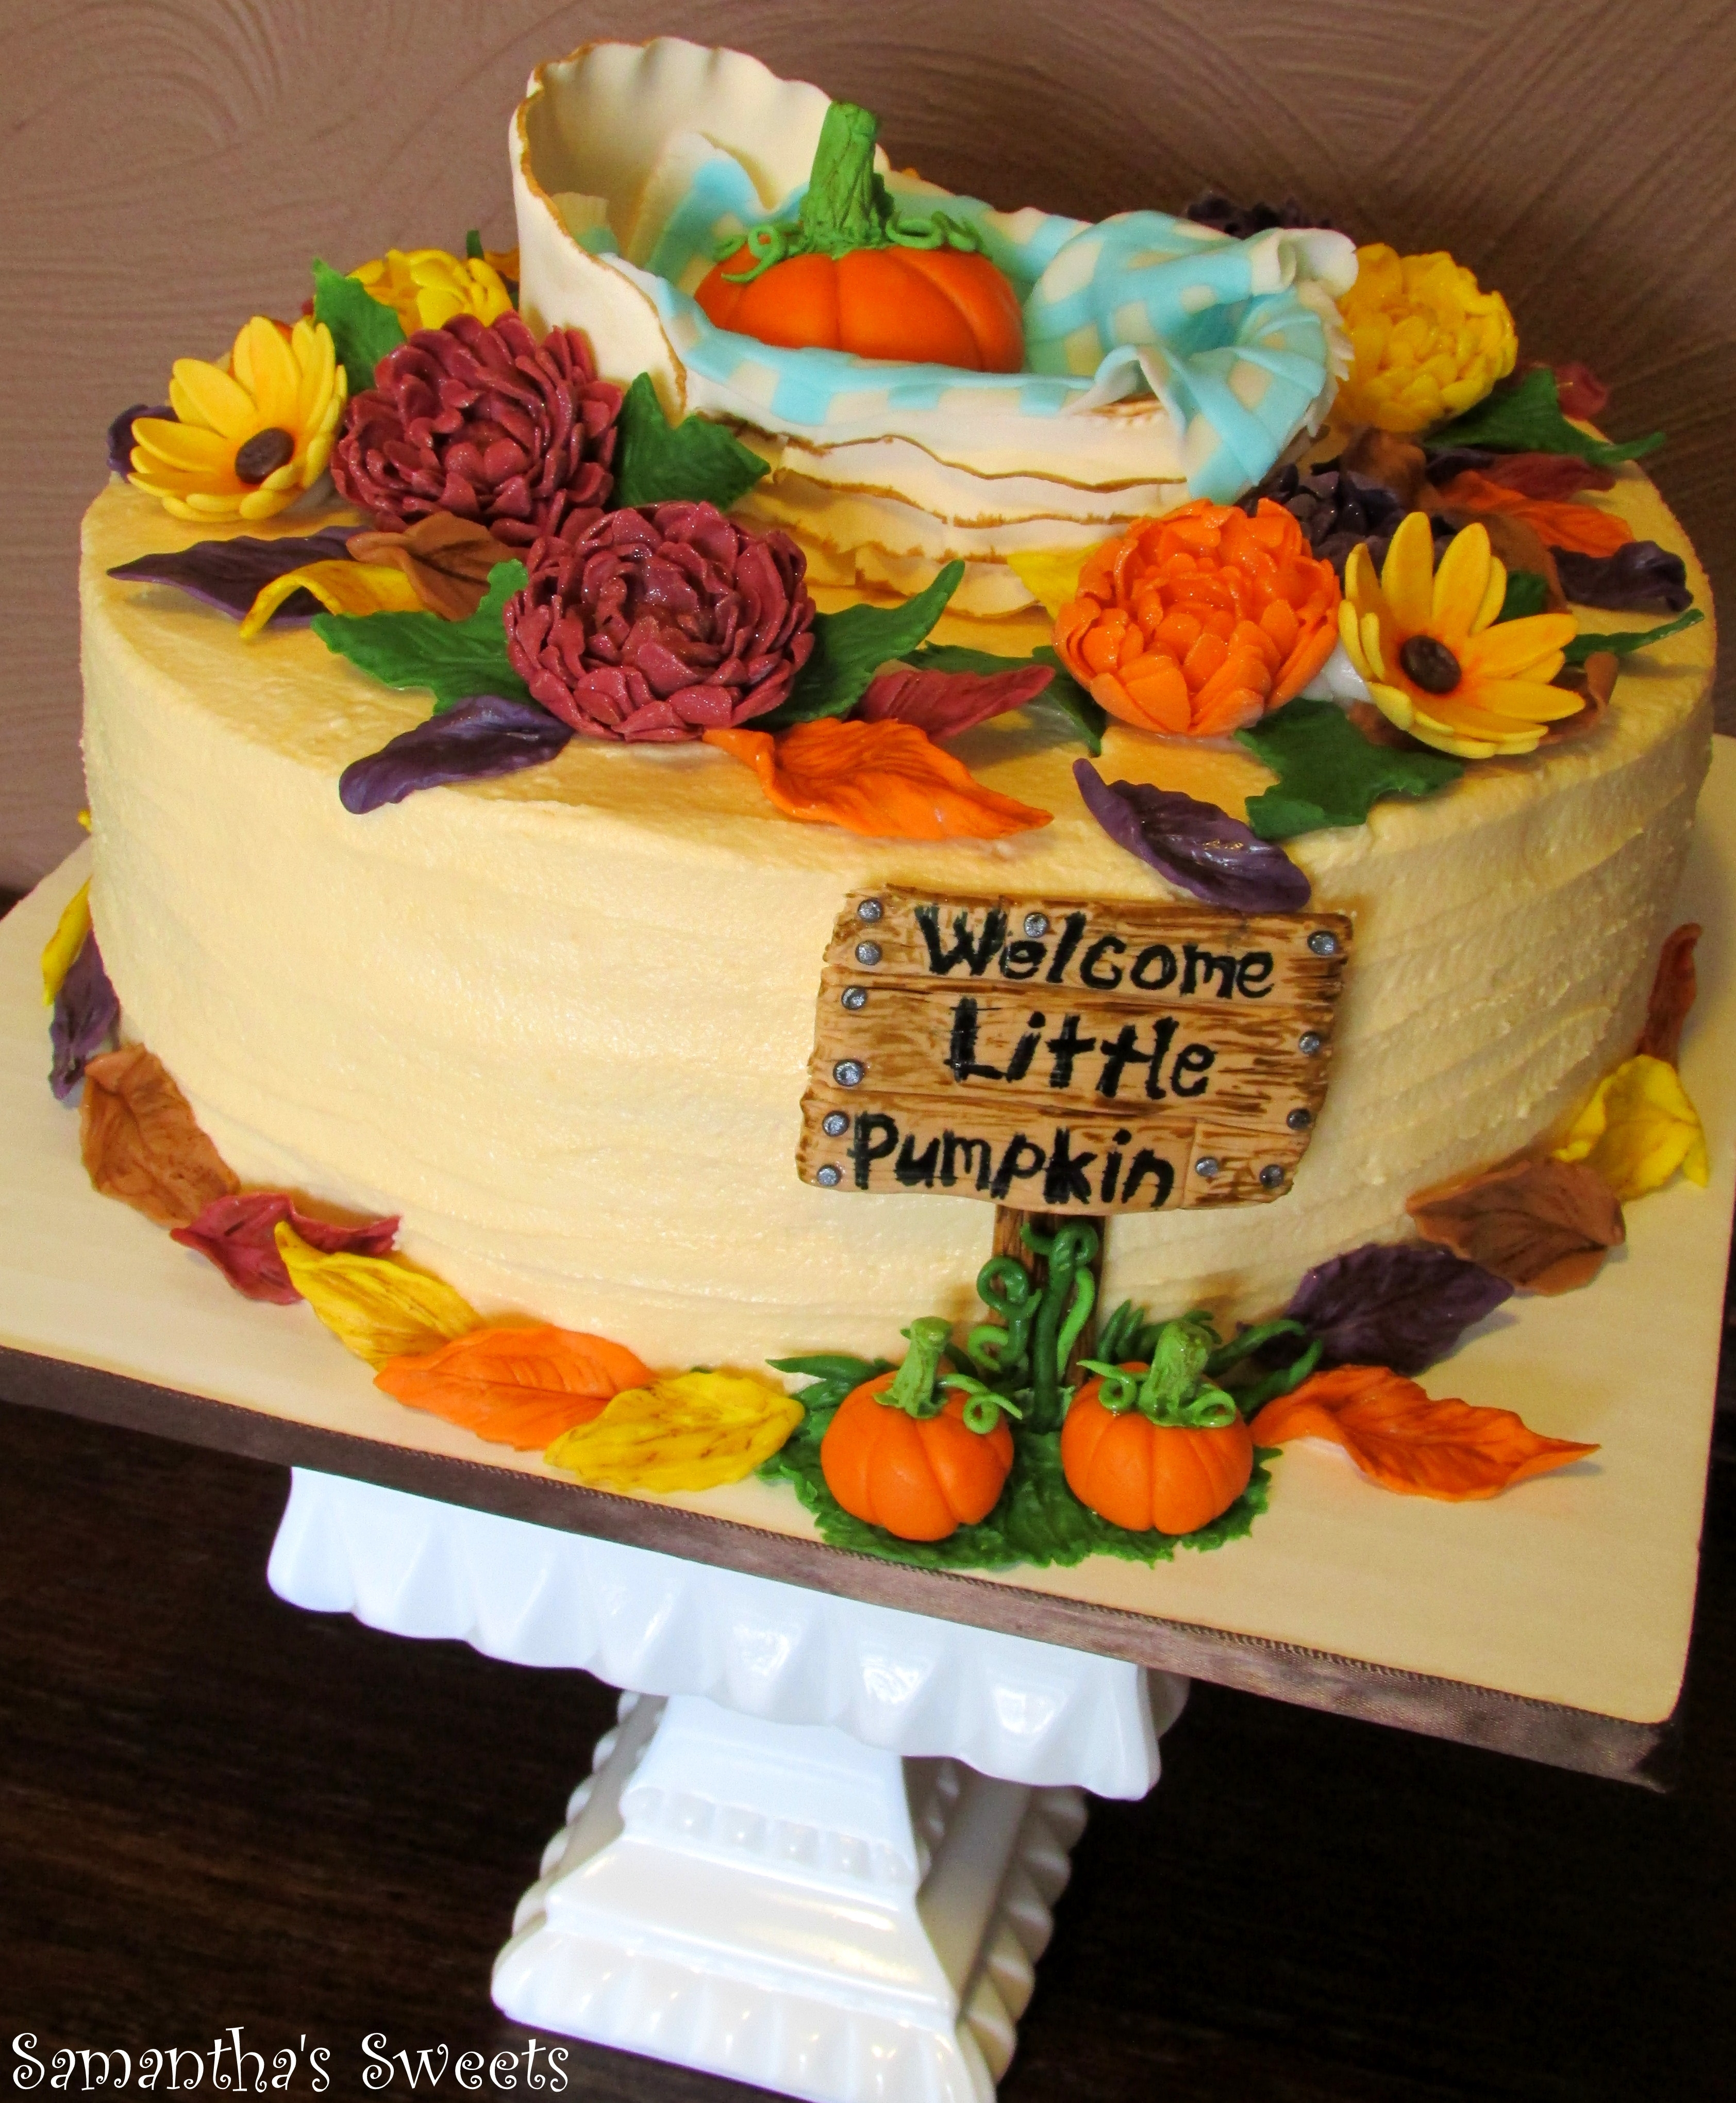 Fall Themed Baby Shower Cakes Part - 43: Welcome Little Pumpkin Baby Shower Cake By Samanthau0027s Sweets ~This Is My  Second Version Of The Fall Themed Welcome Little Pumpkin Cake!